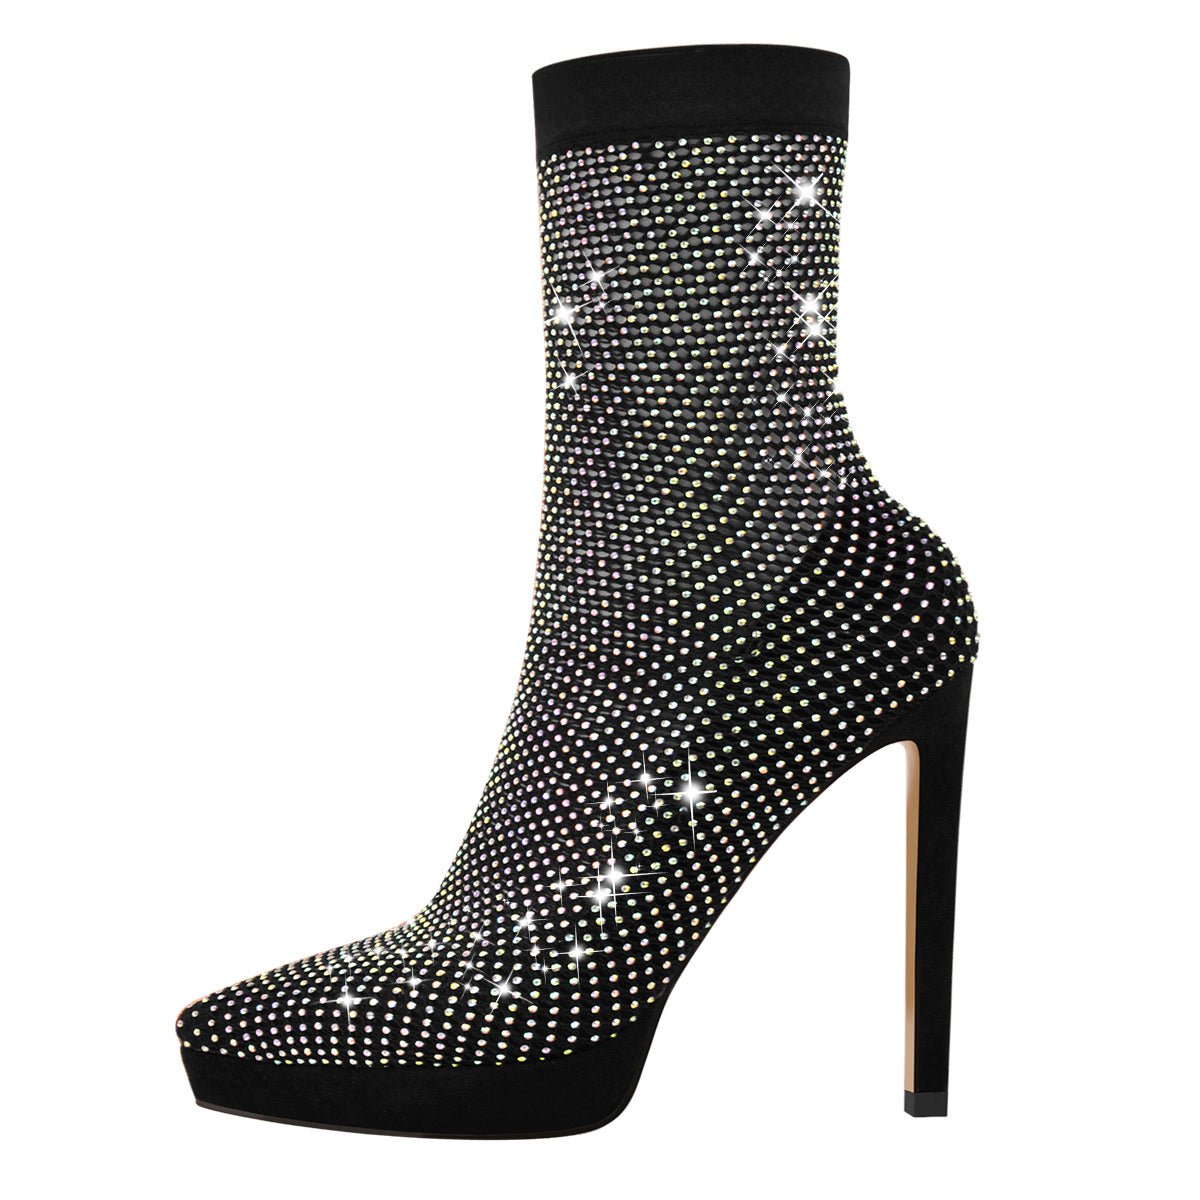 Clear Fishnet Platform Pointed Toe Slim High Heels Rhinestone Sandals Boots